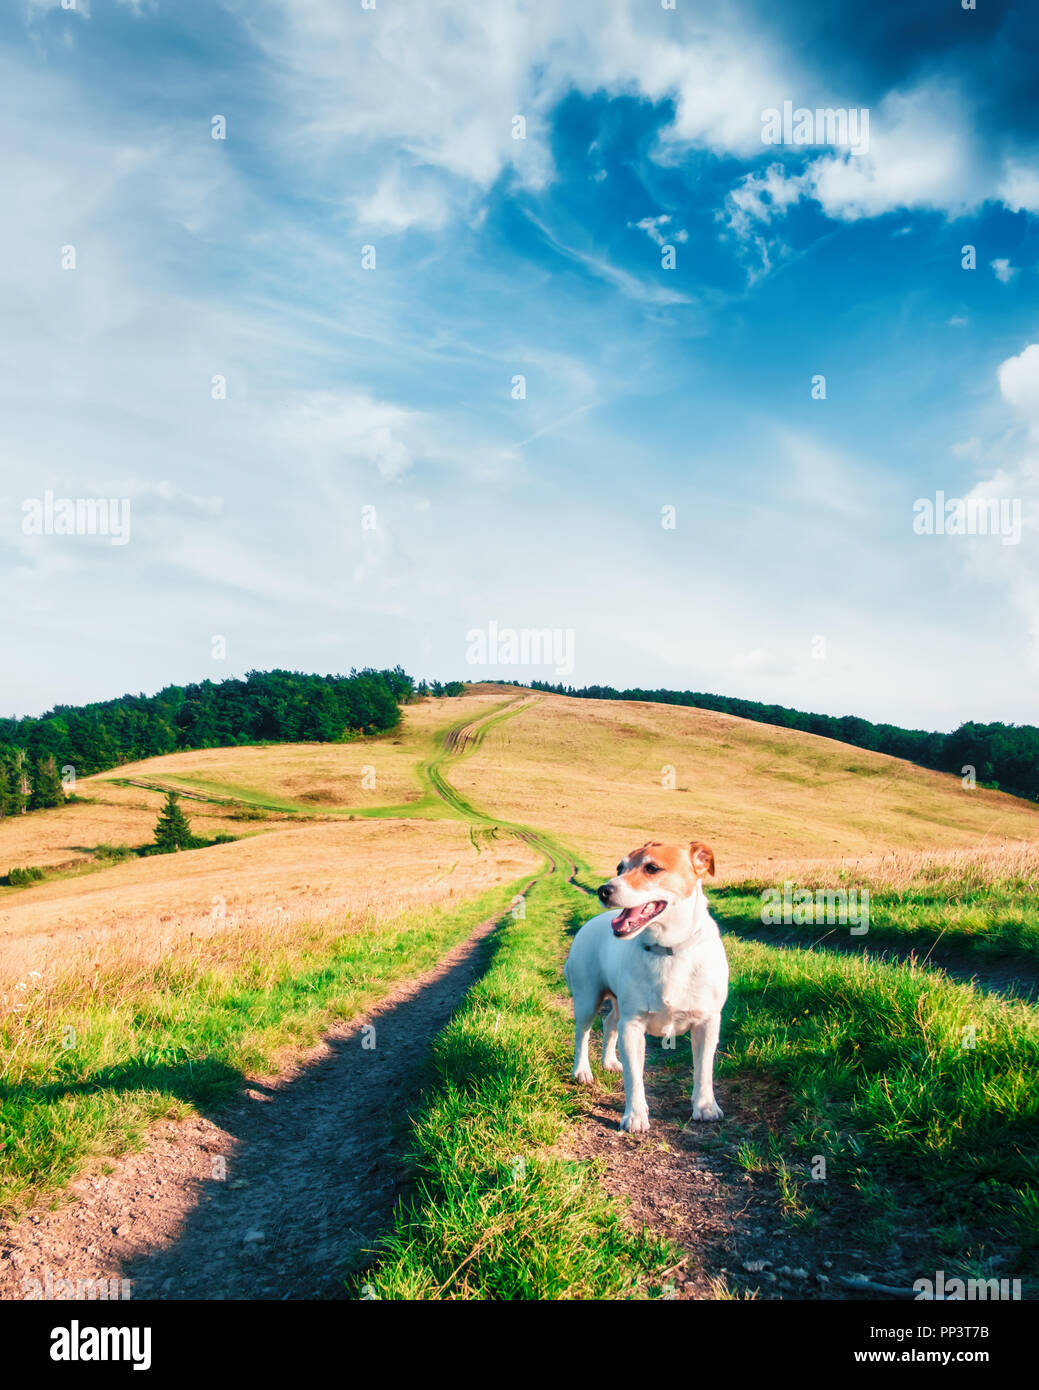 Alone white dog on mountains road against the backdrop of an incredible mountain landscape. Travel concept - Stock Image